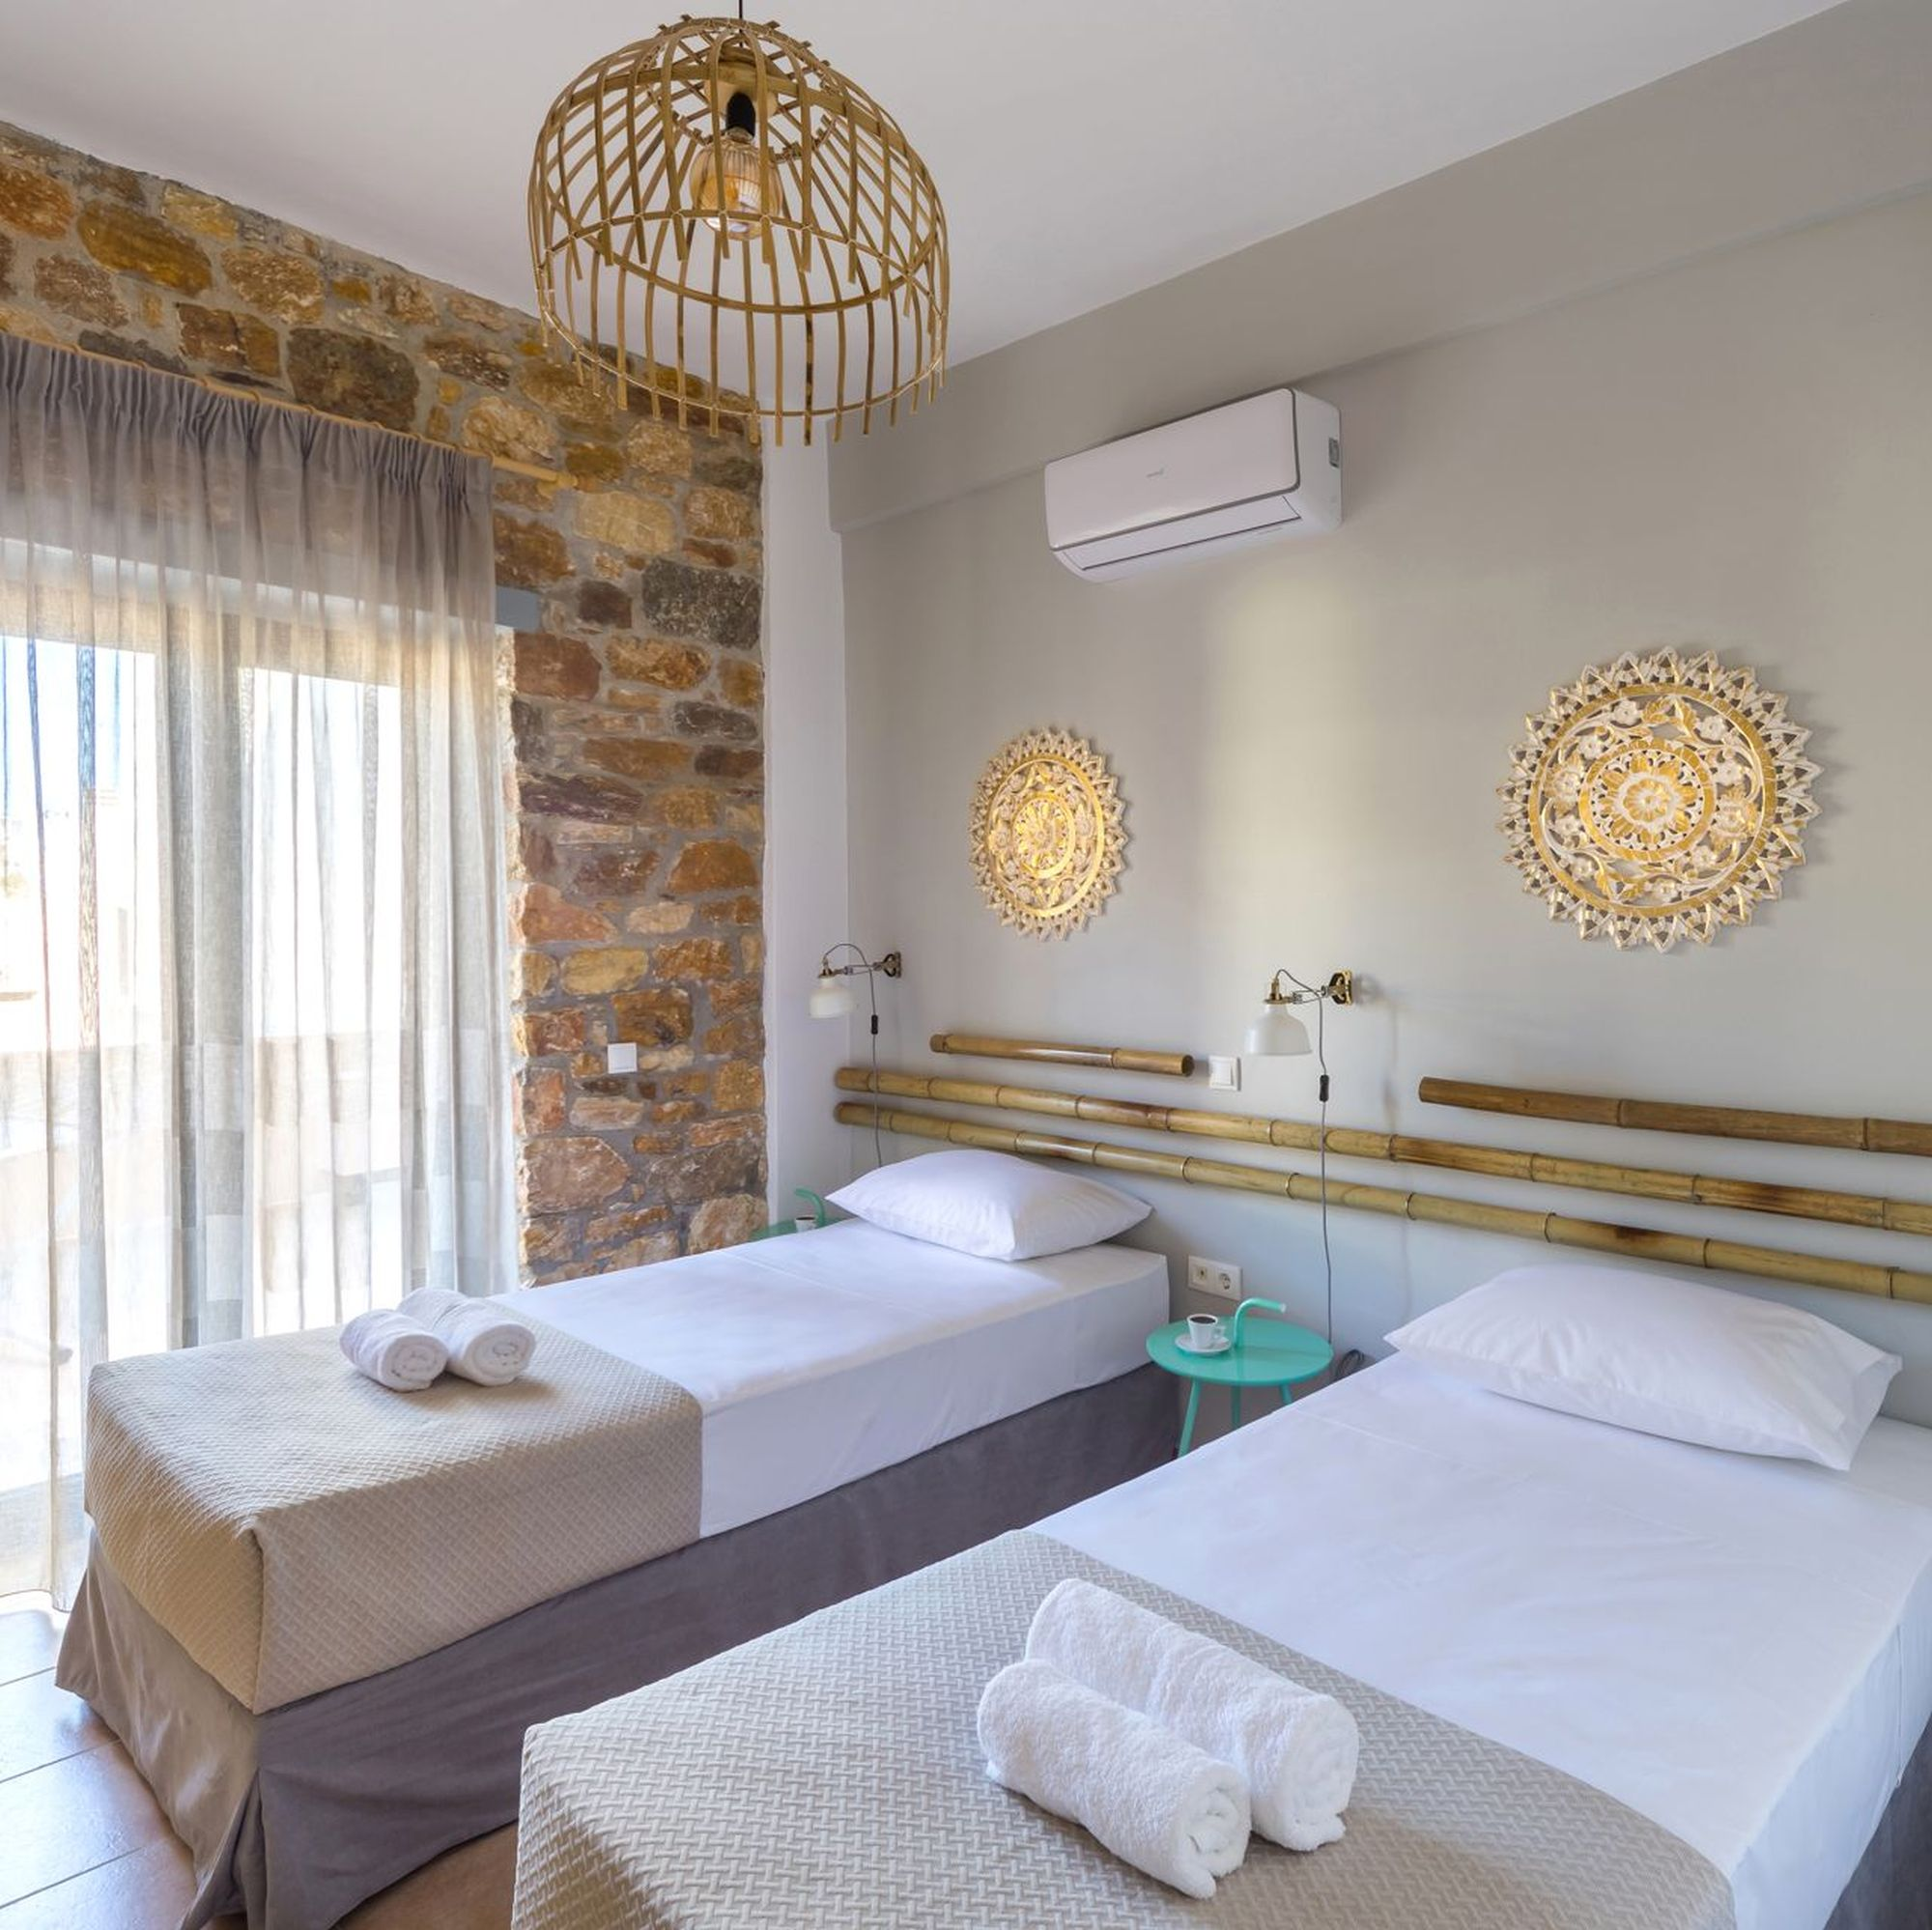 Twin bedroom of a stone built Syra Suite residence, blue bedside tables, white-gold wall lights, decorative masts and round gold metallic decorative elements on the wall over the beds.